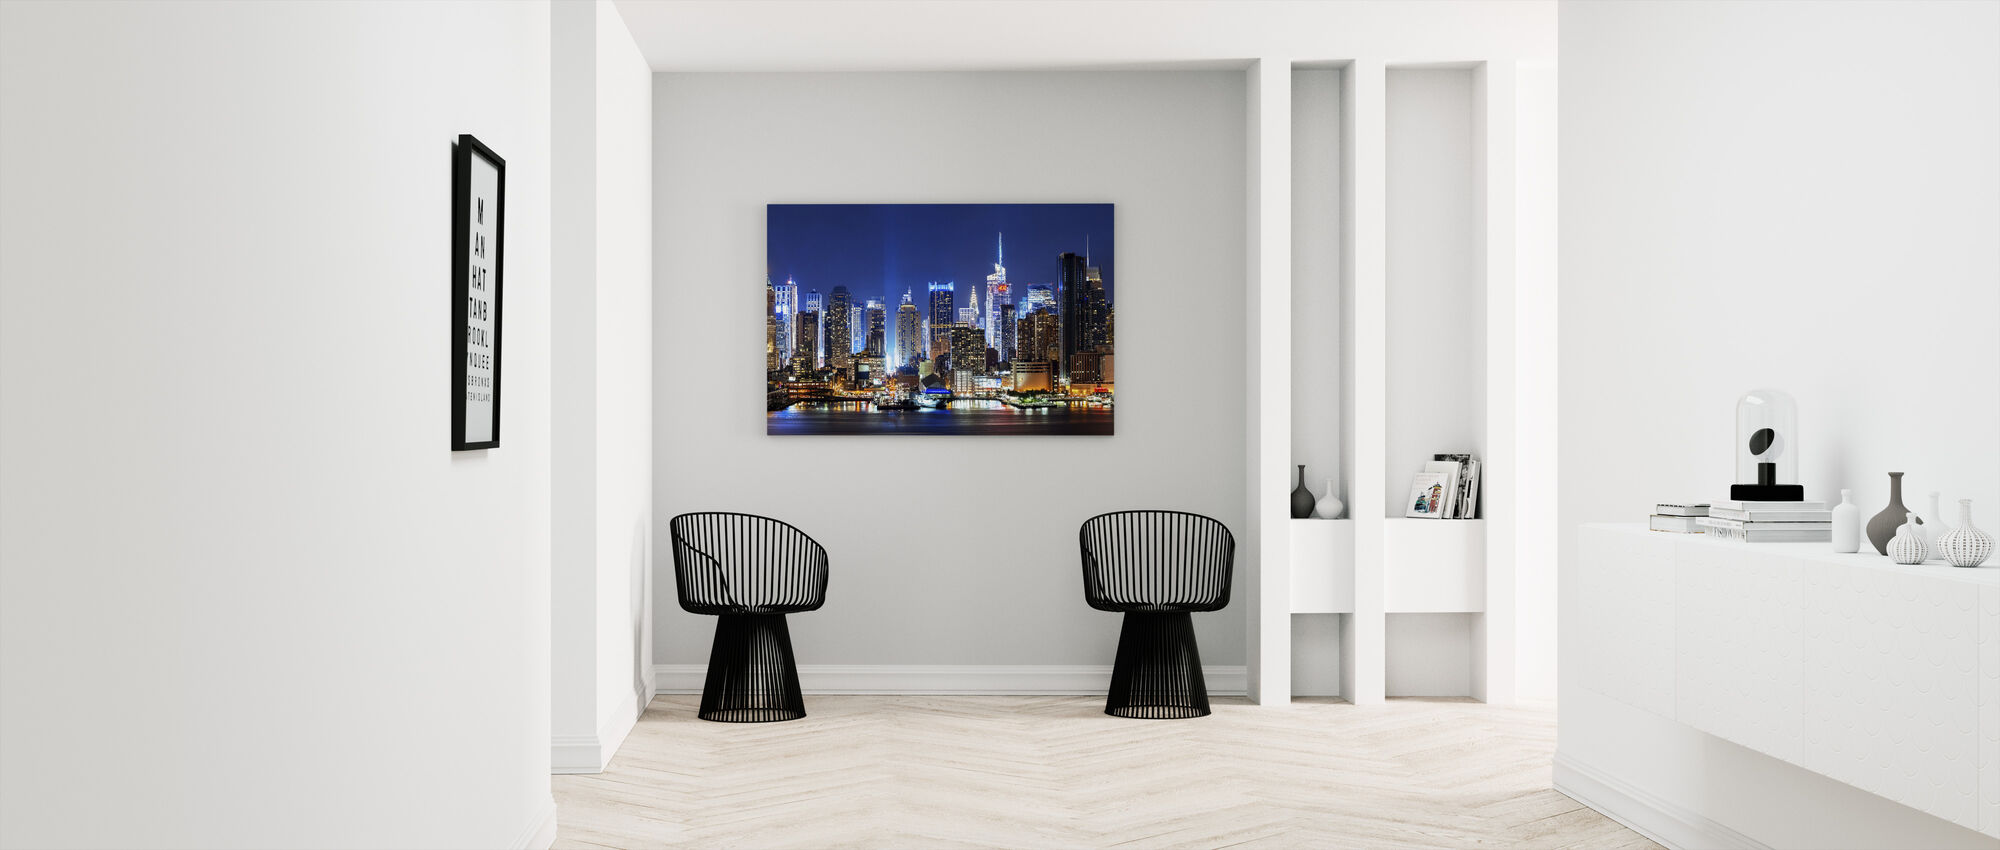 New York City Night Skyline - Canvas print - Hallway